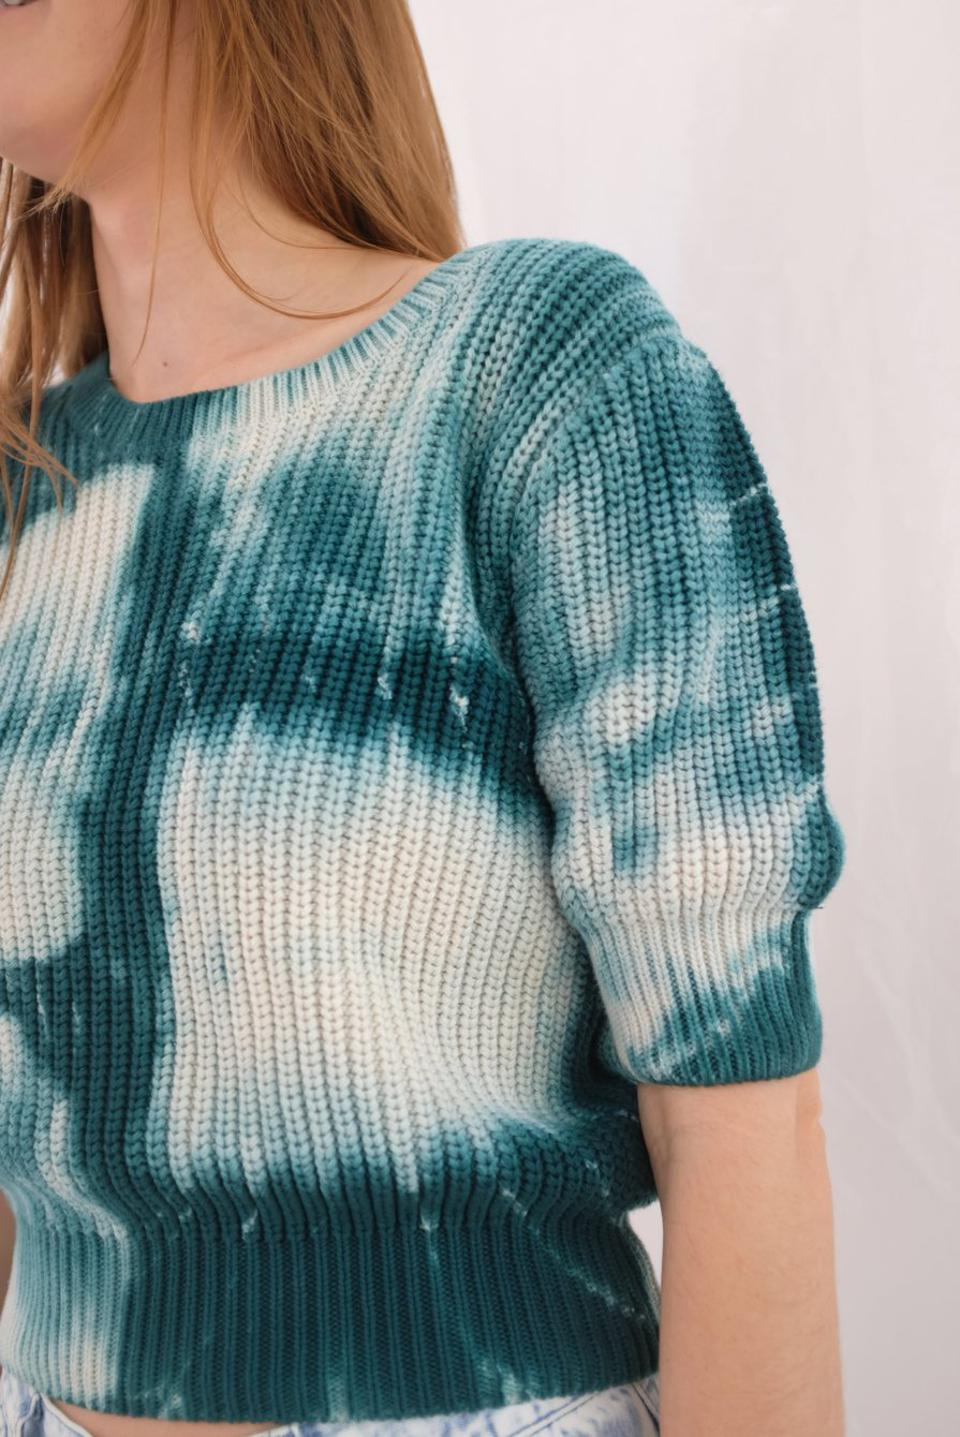 Tie-dye short sleeve sweater by Beklina